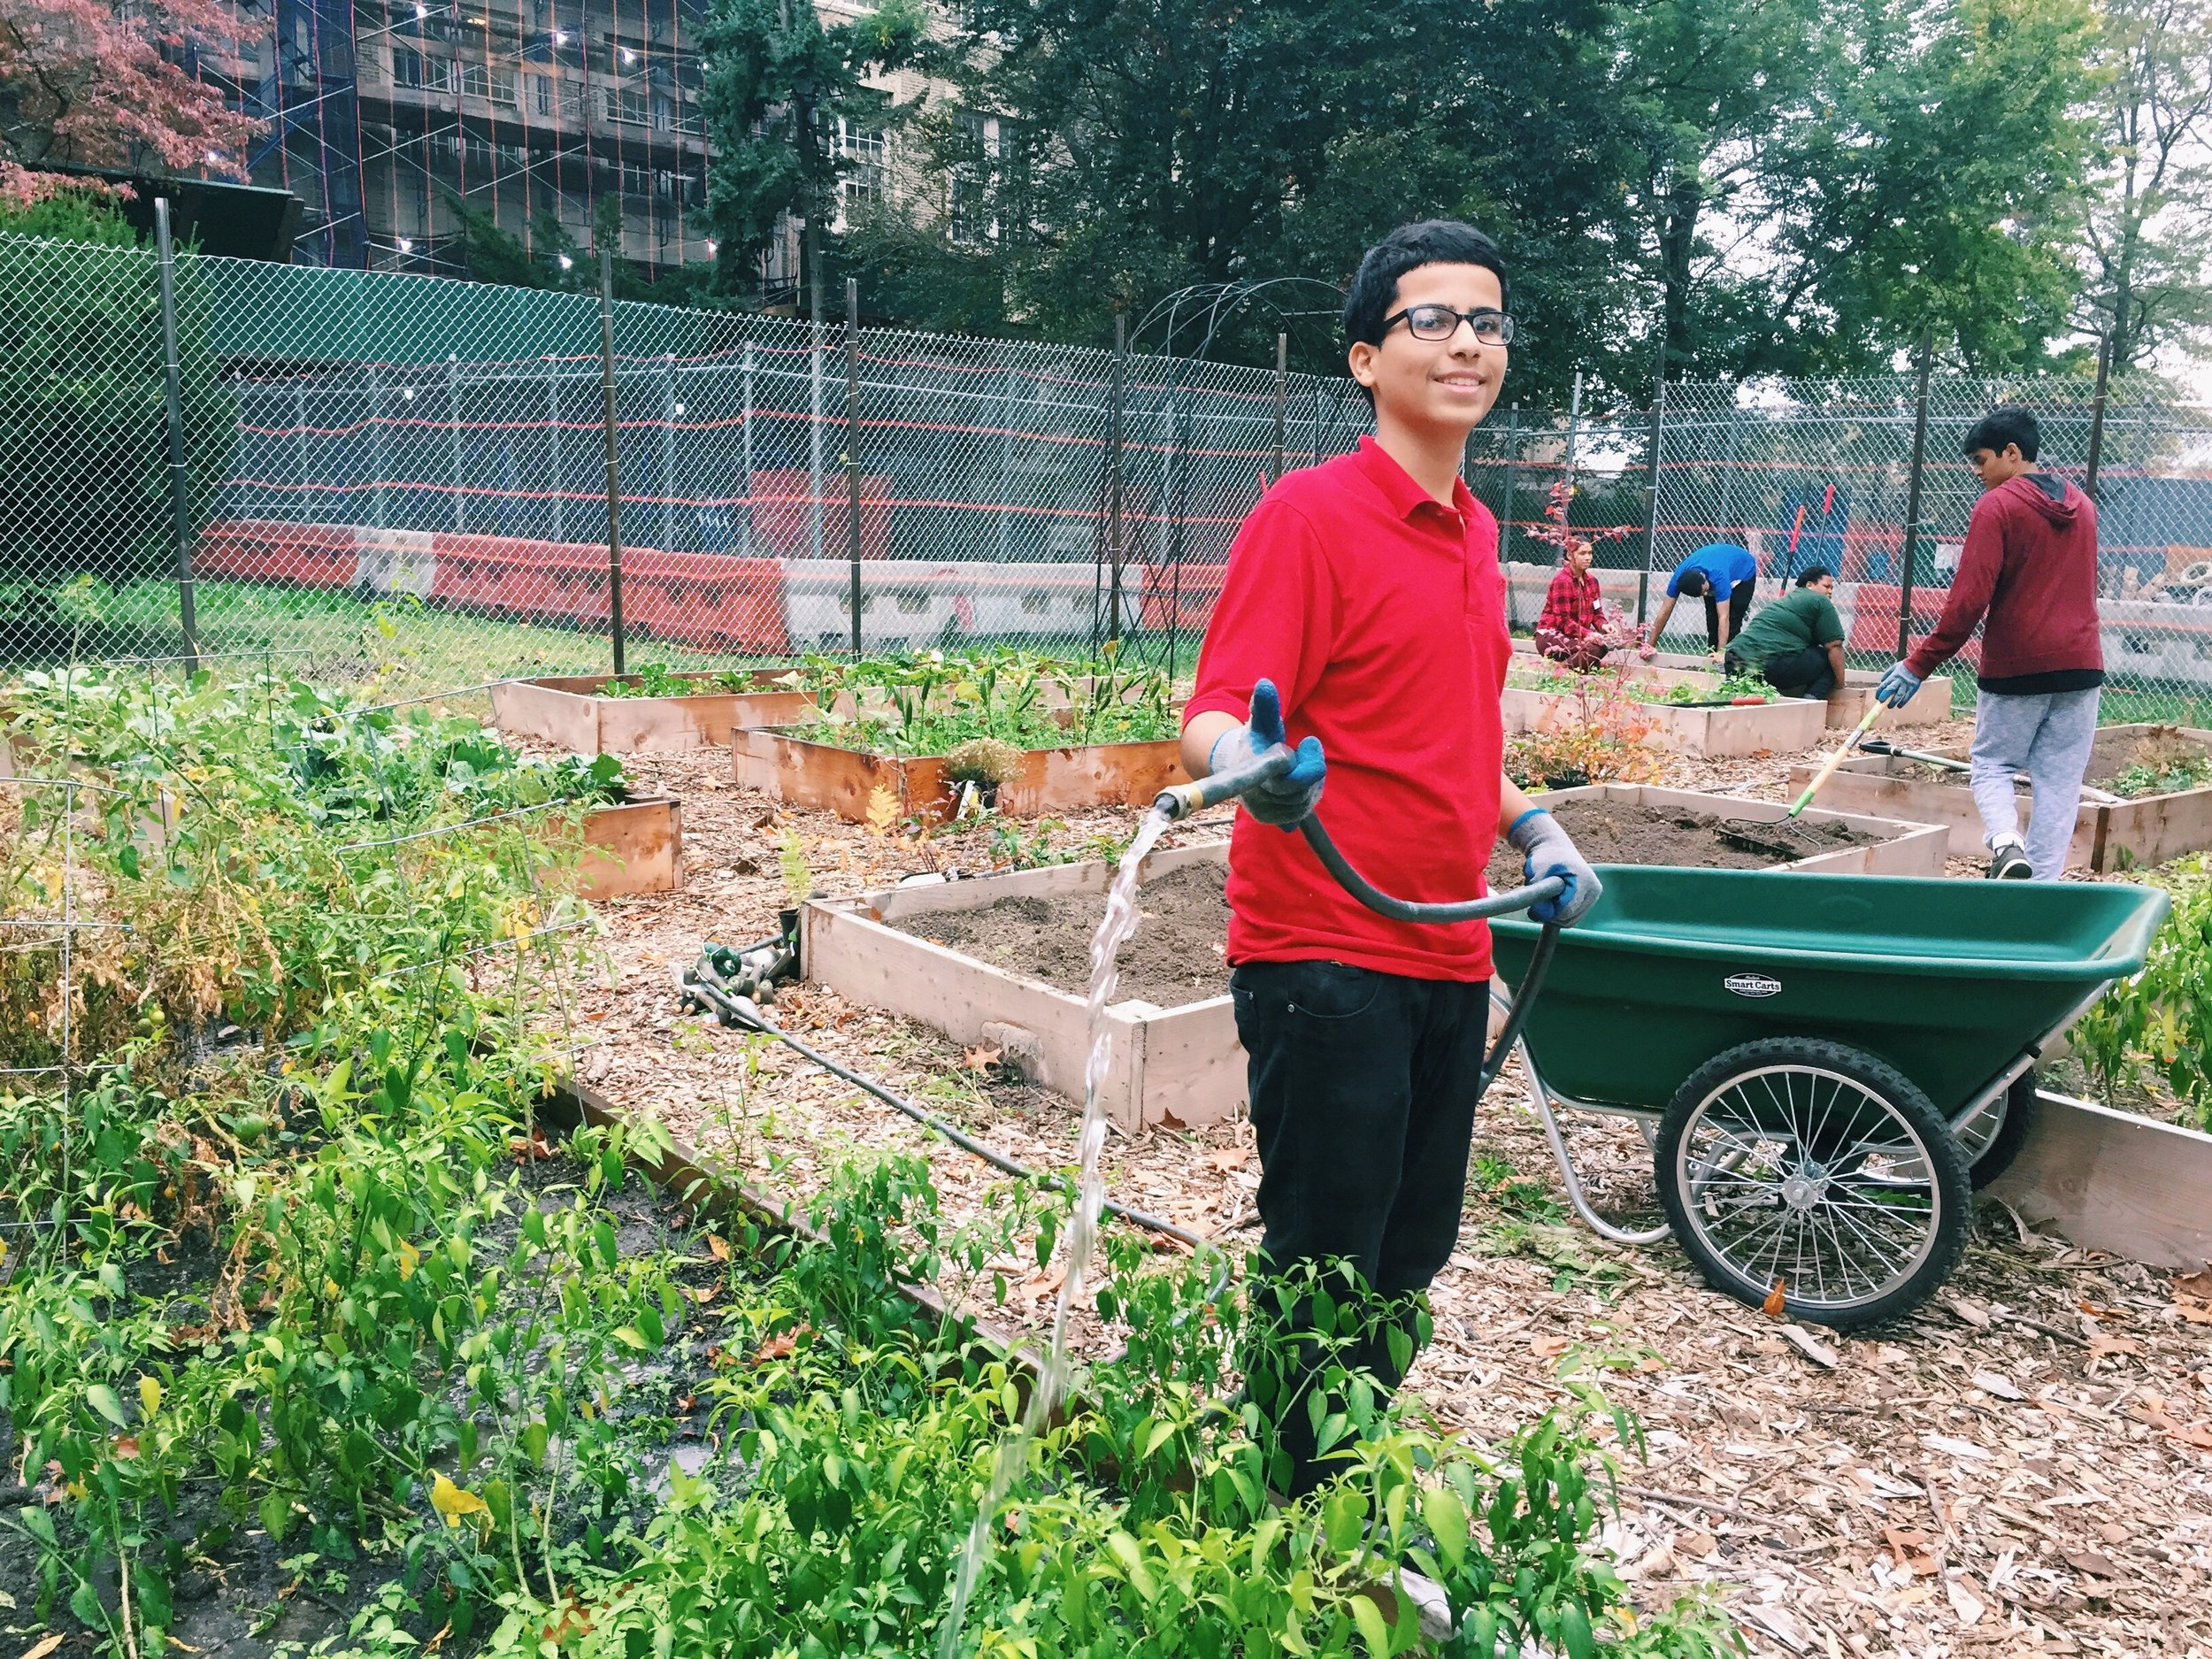 The community garden beds were in much need of some water and compost!